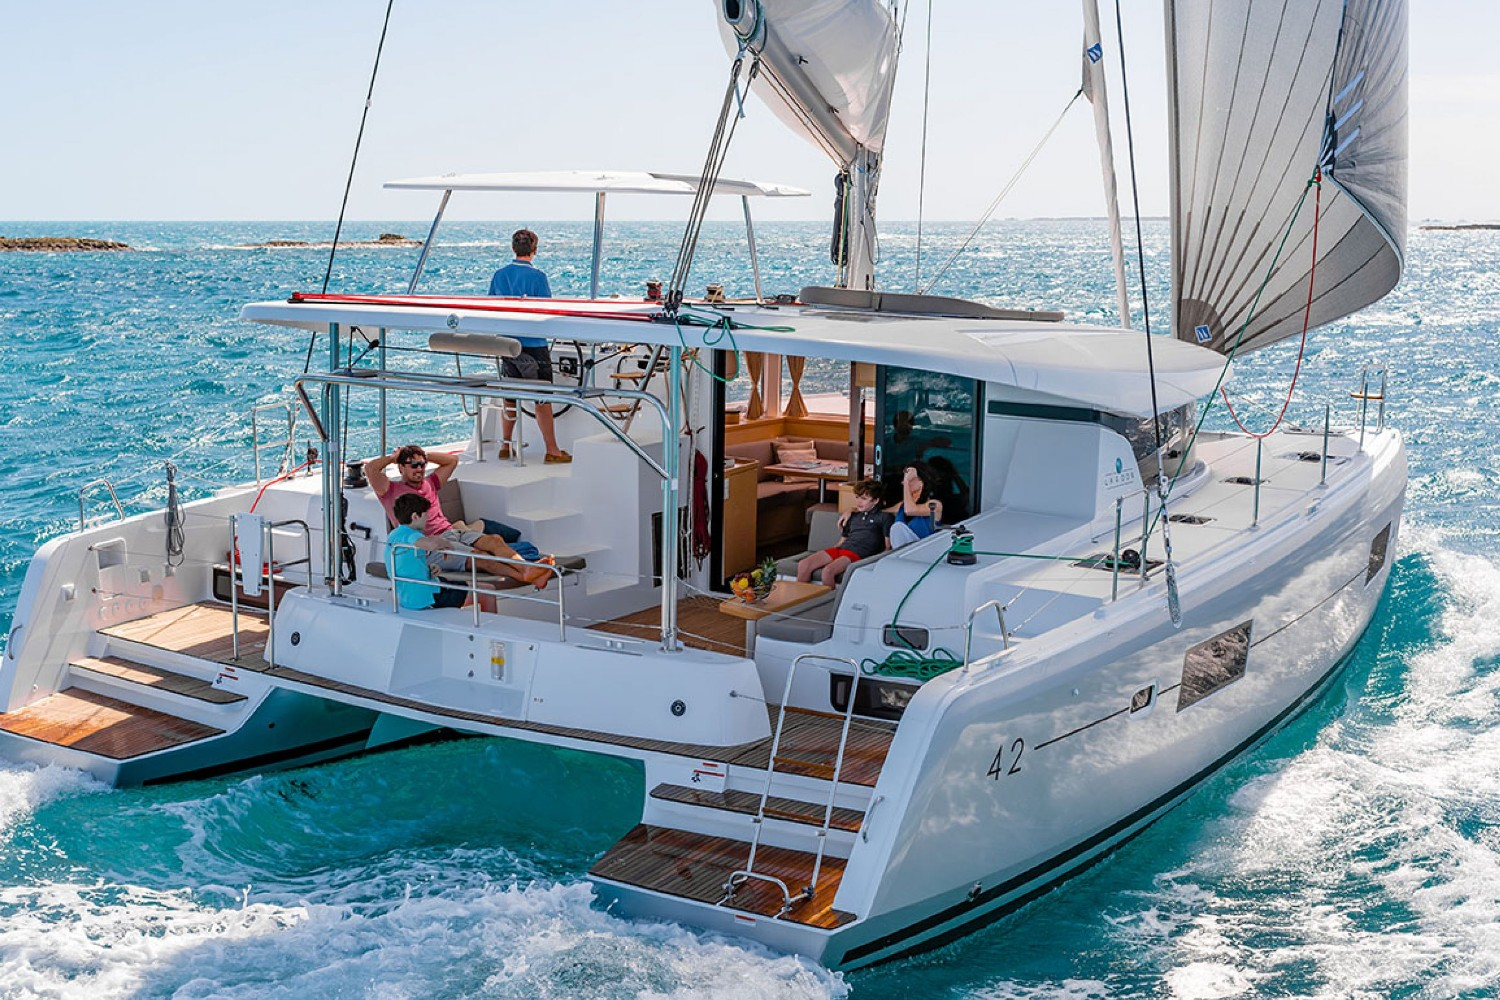 Lagoon 42 SailSterling Luxury Wine and Catamaran Tour